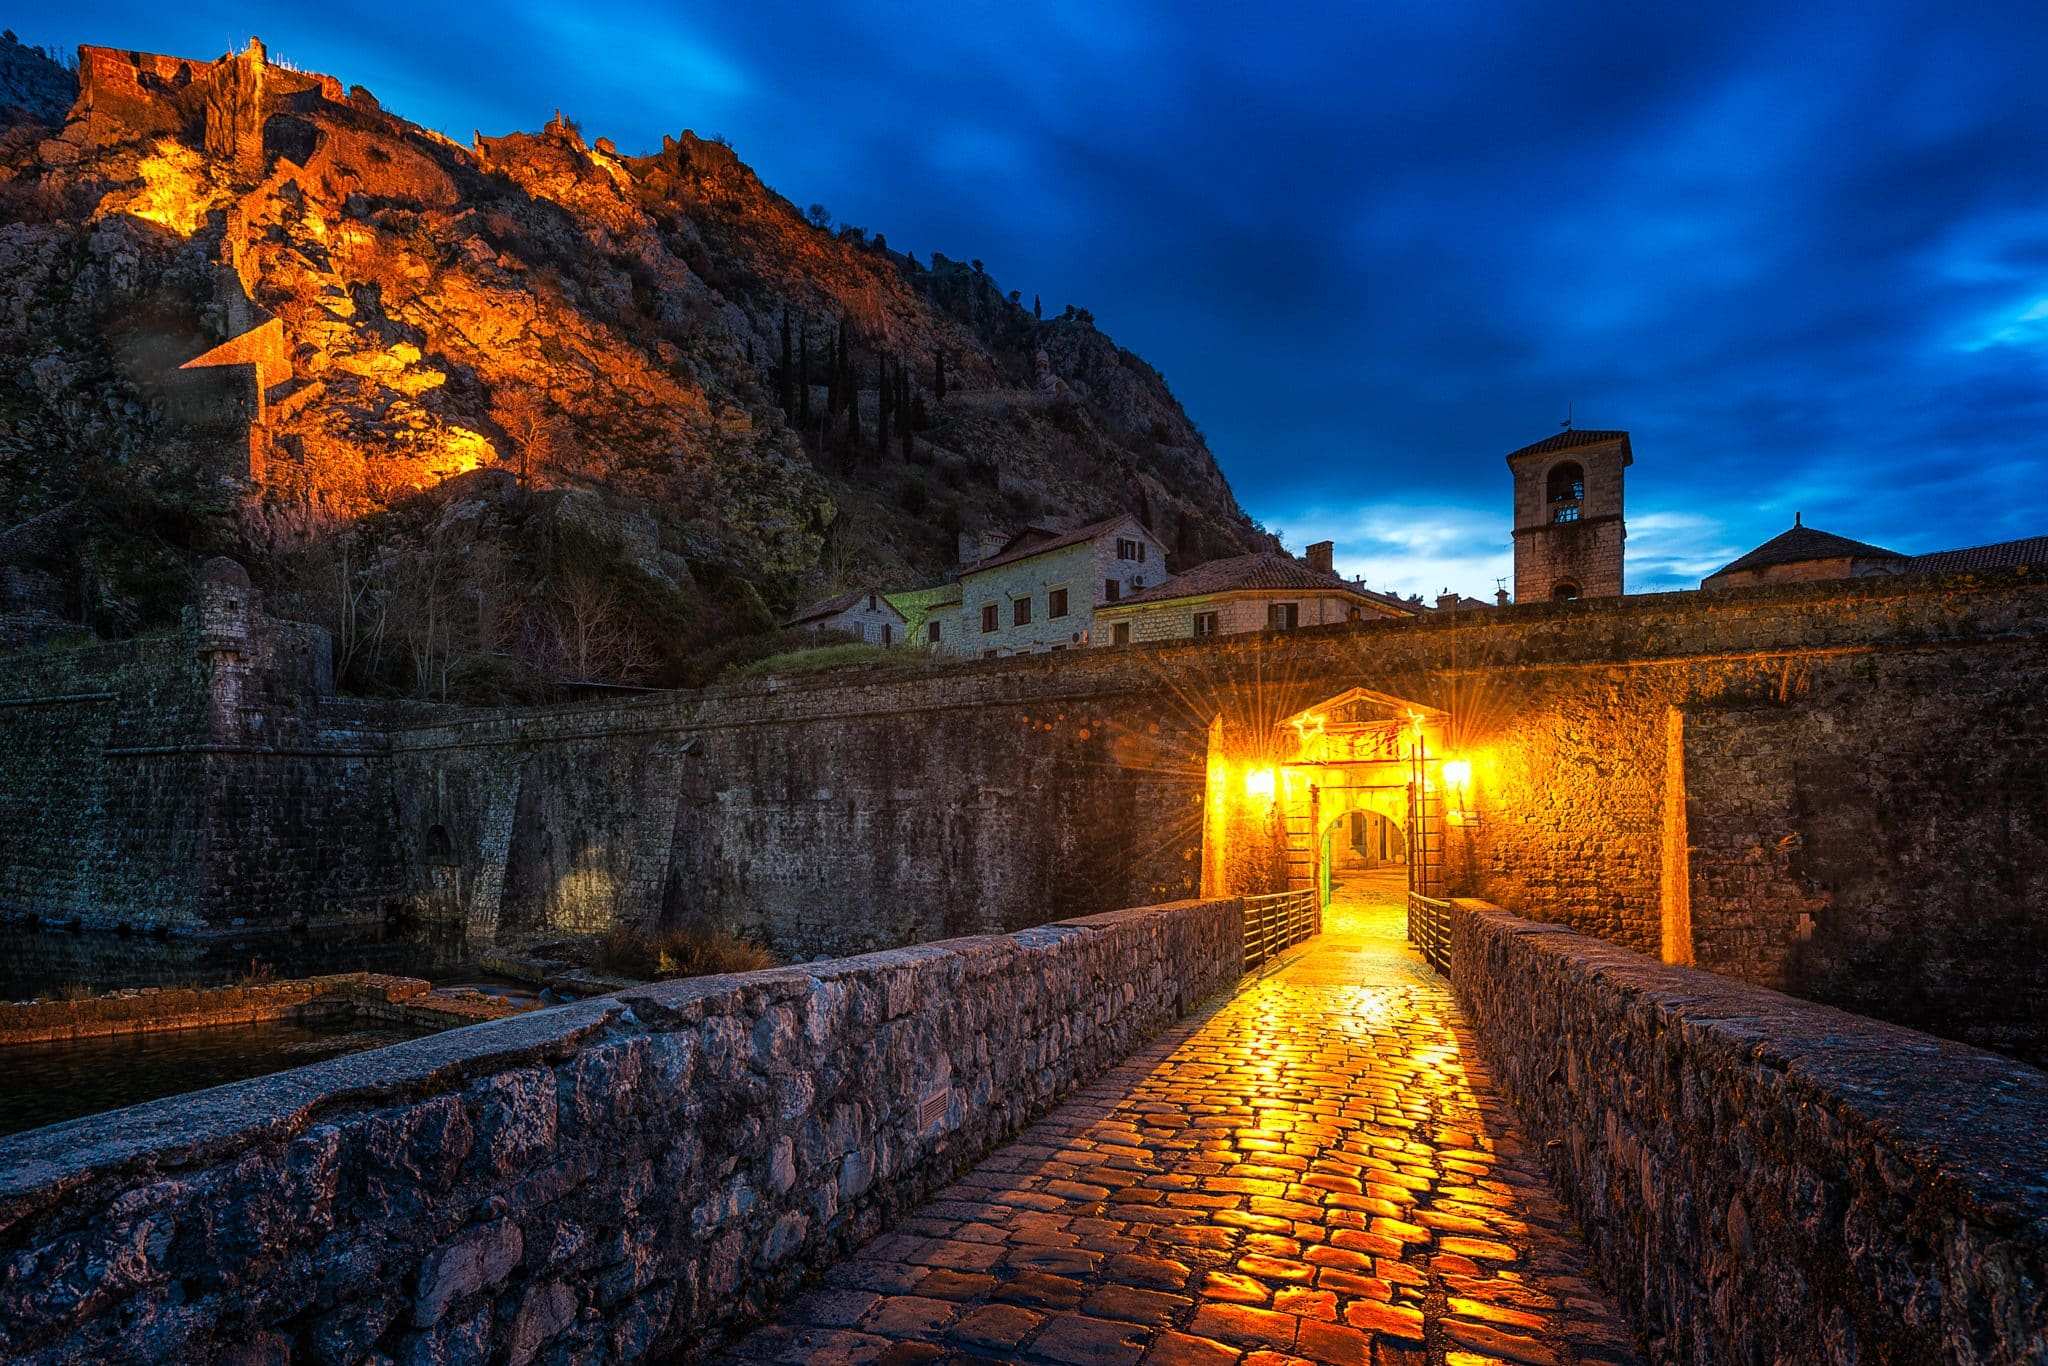 Picture of Kotor Northern Gate, taken just before sunrise.